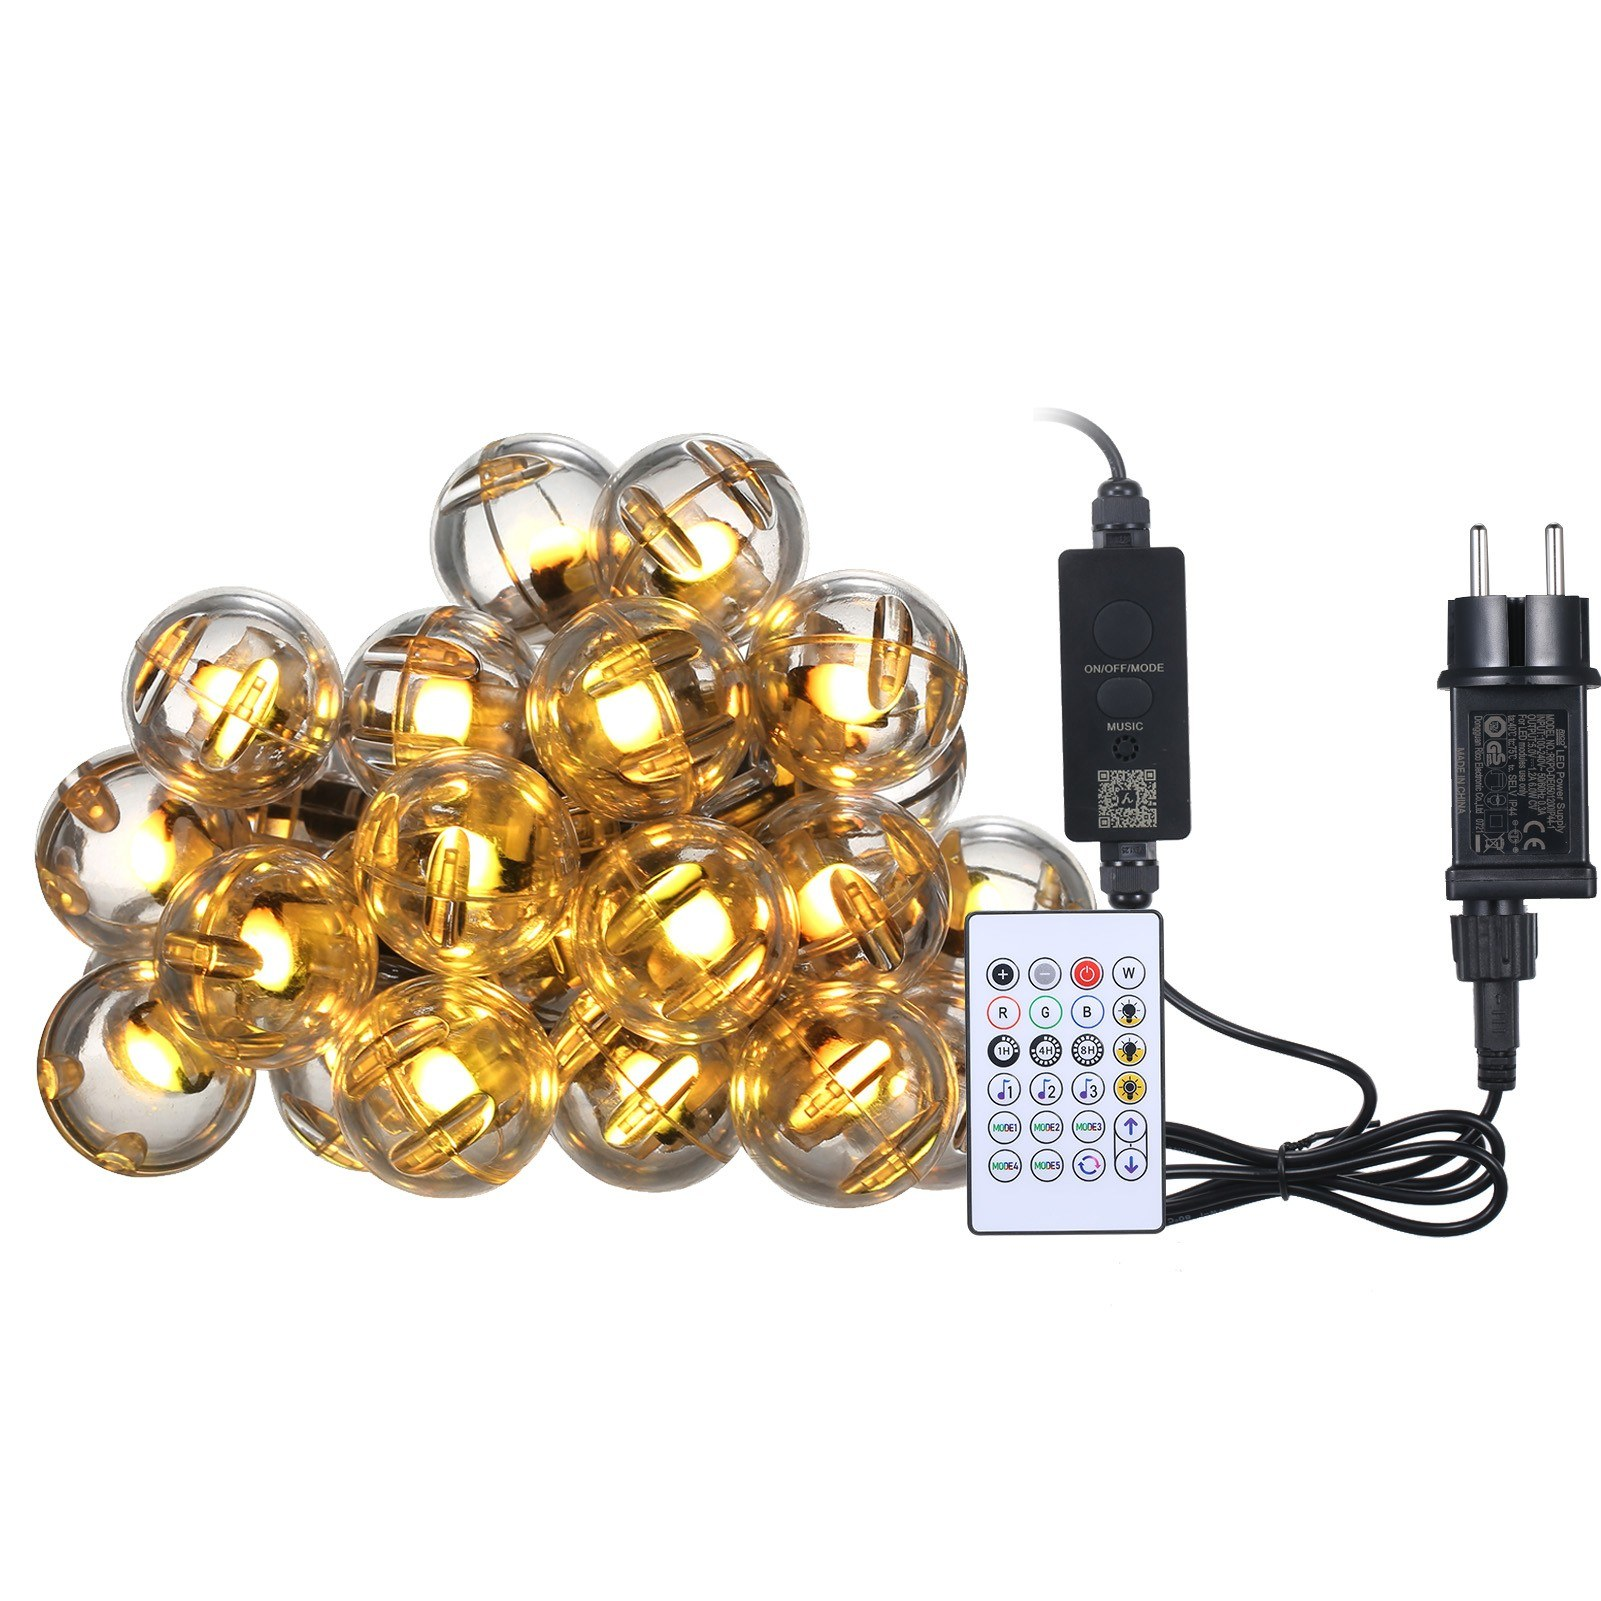 Tomtop - 54% OFF 5m Leds Lamp String Intelligent Dimmable Waterproof RGB-Color Lighting, $24.99 (Inclusive of VAT)